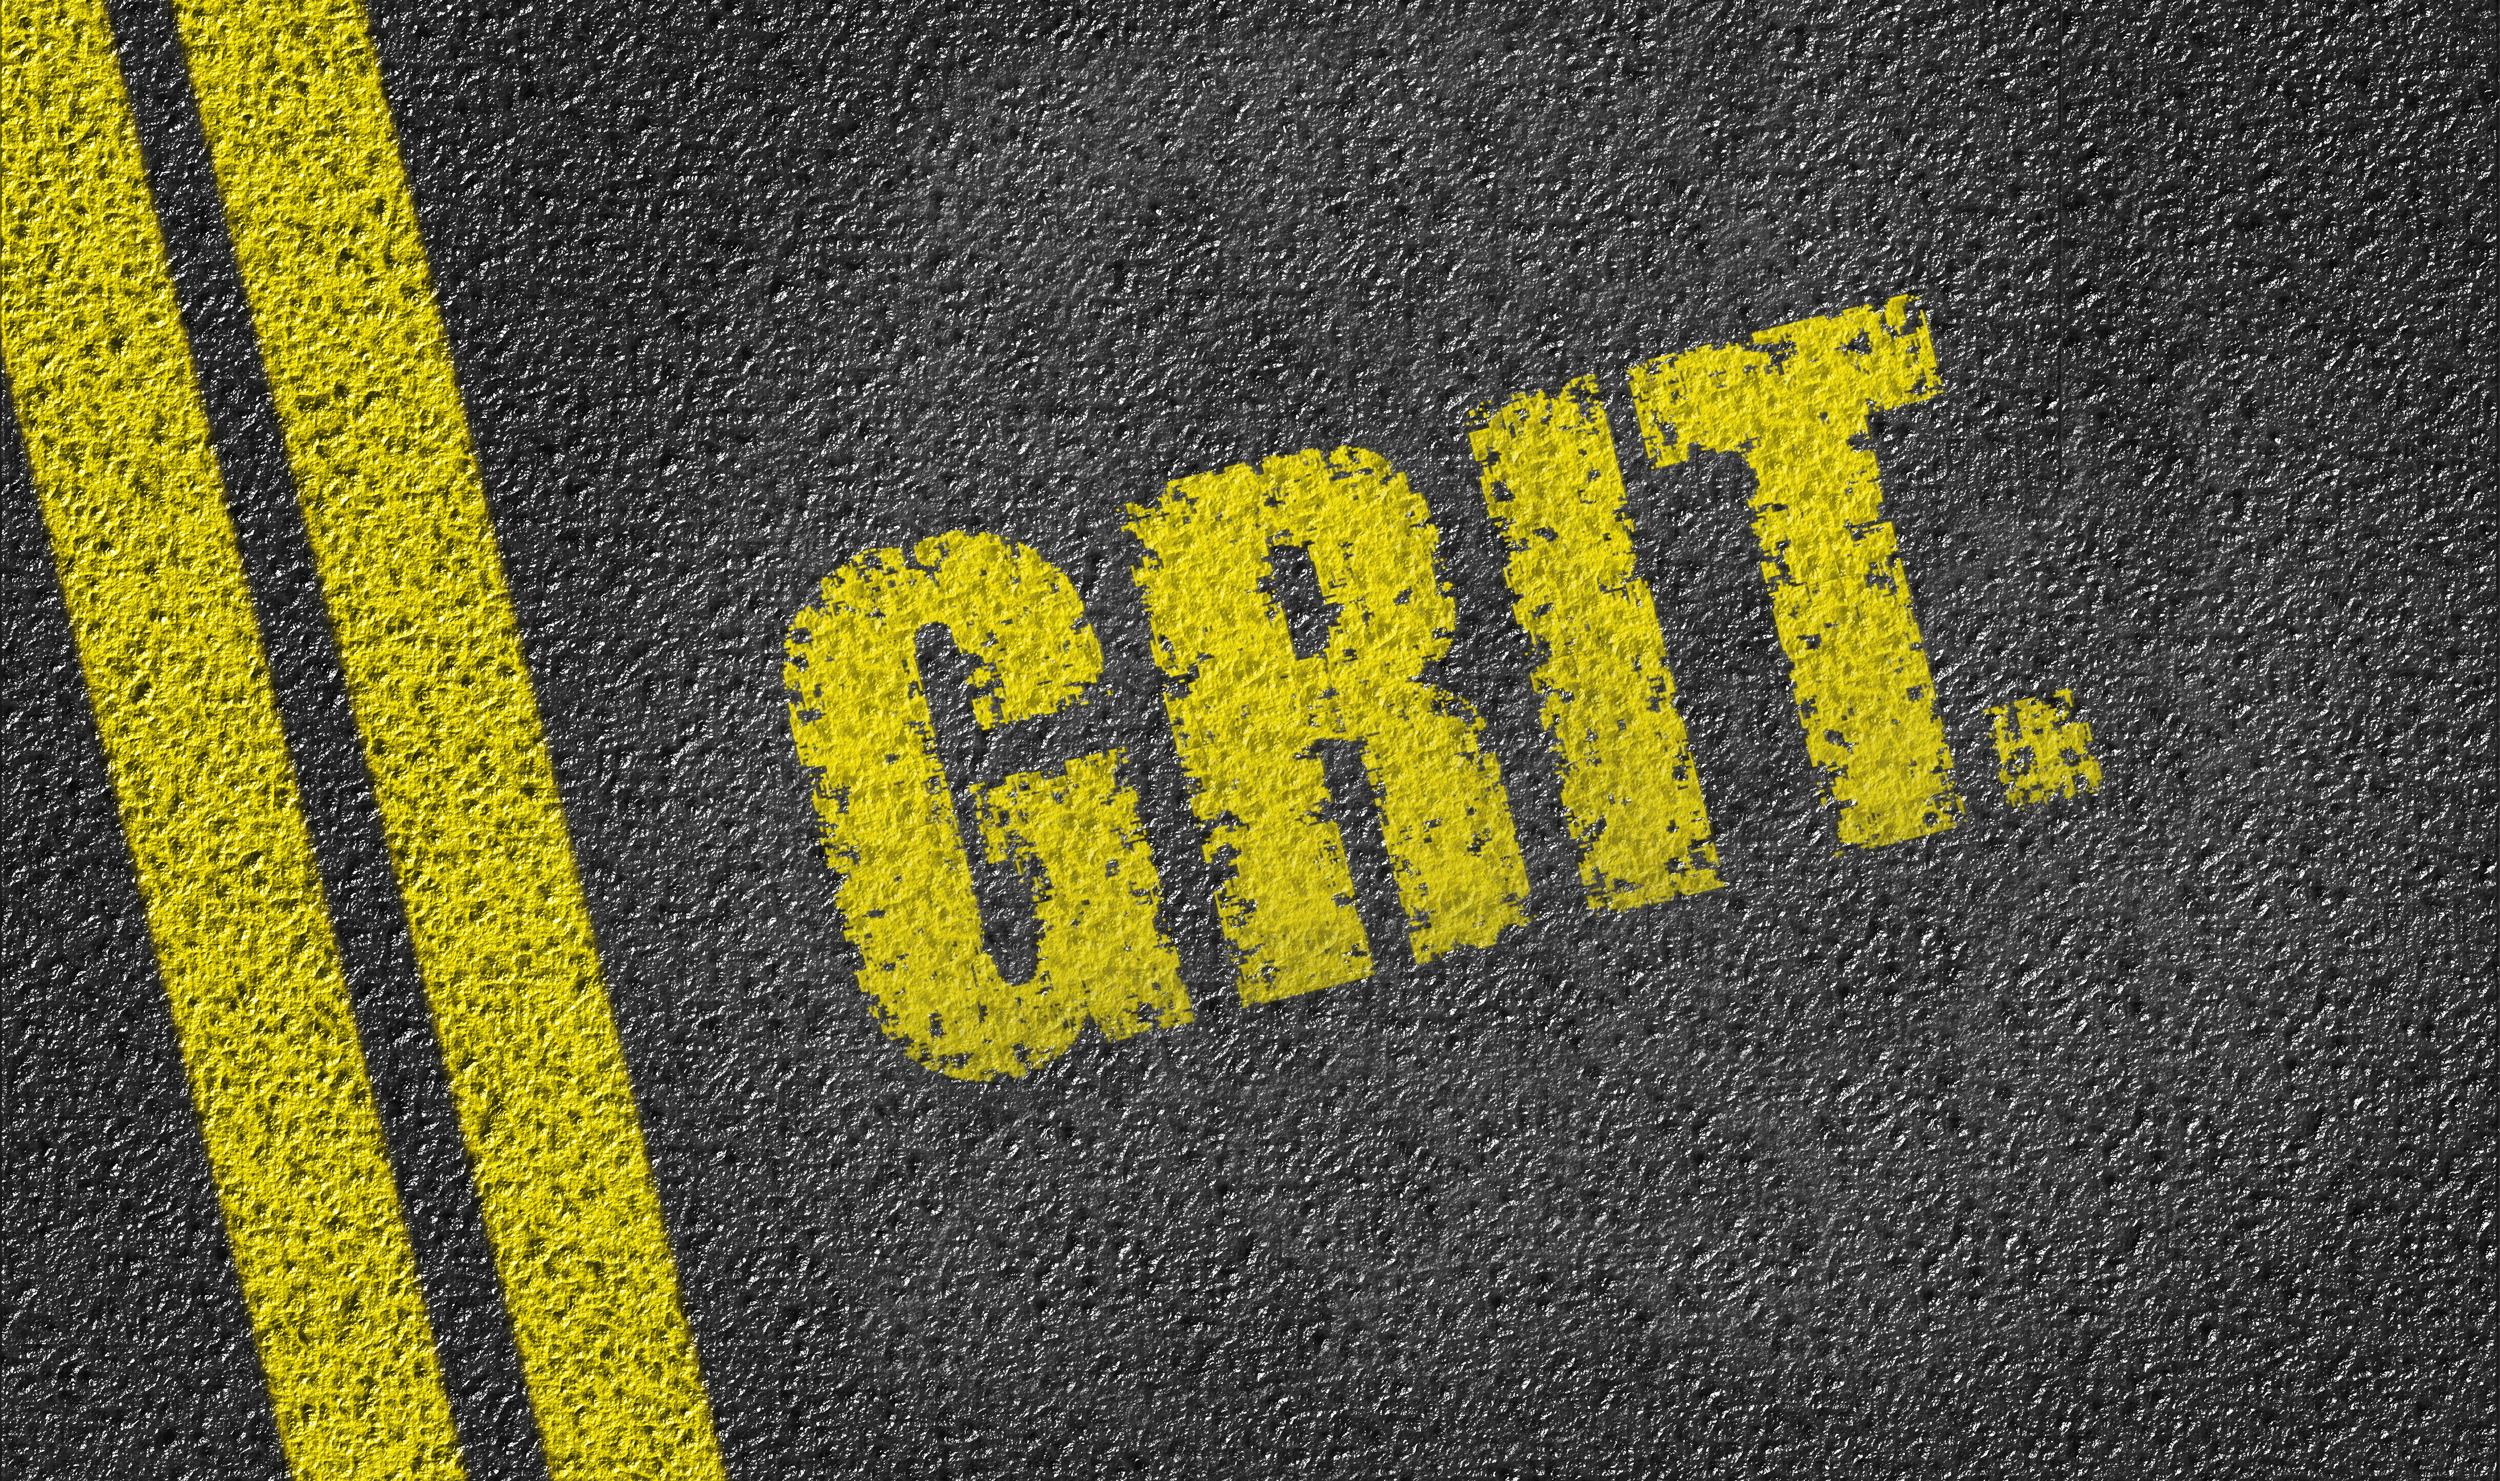 Grit words on pavement